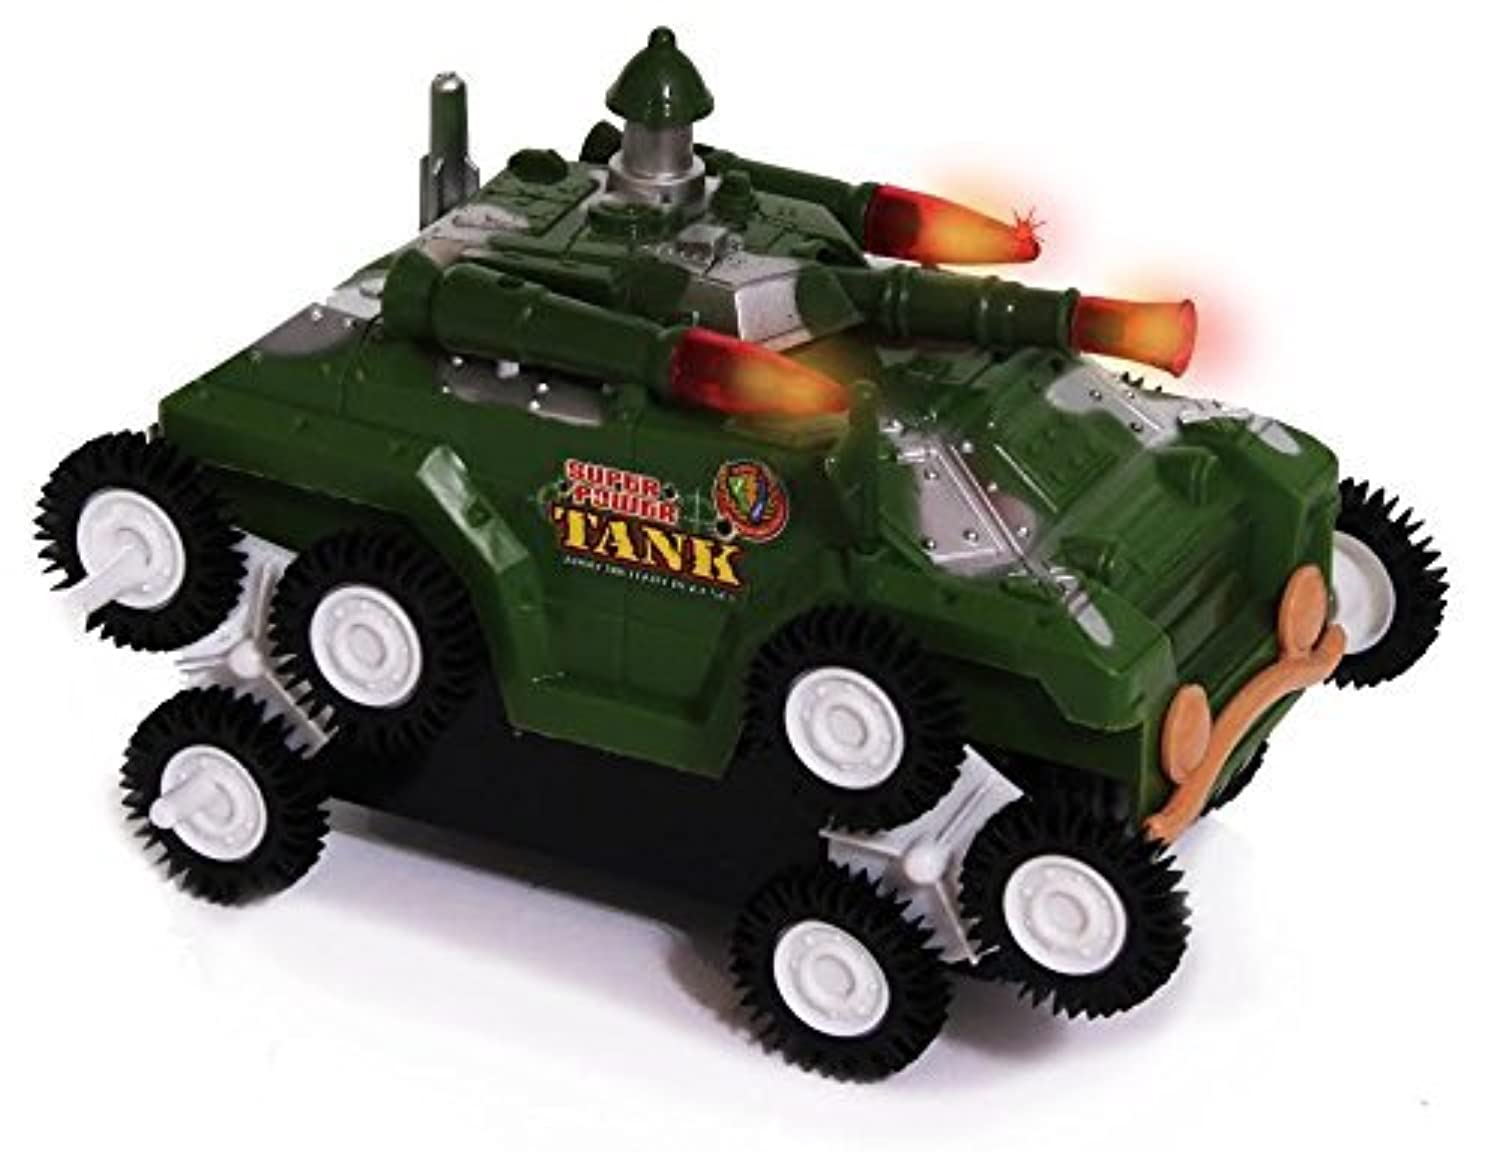 Dazzling Toys Military Battle Tank with Flashing Lights and Army Sound